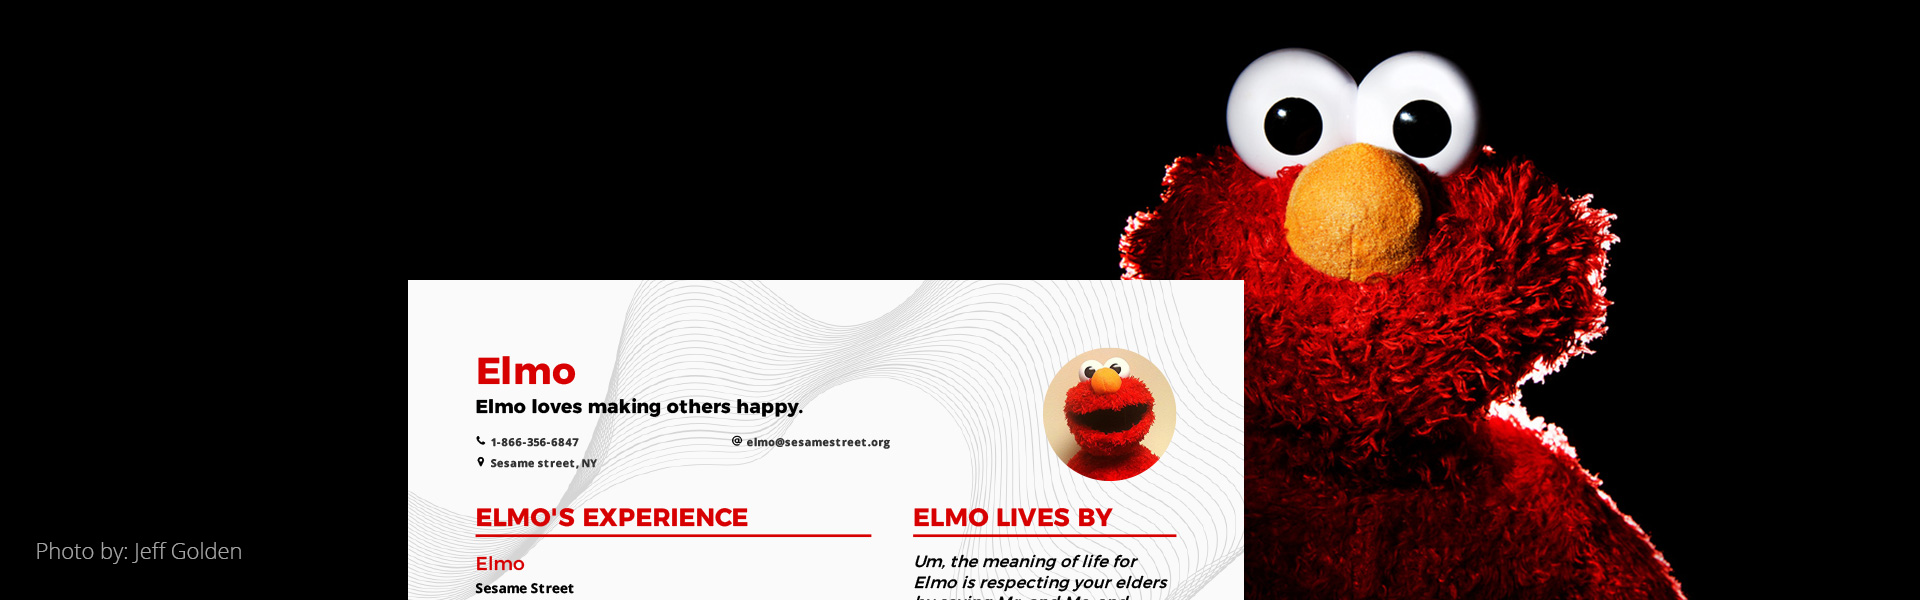 Elmo is getting laid off. How can we help? cover image